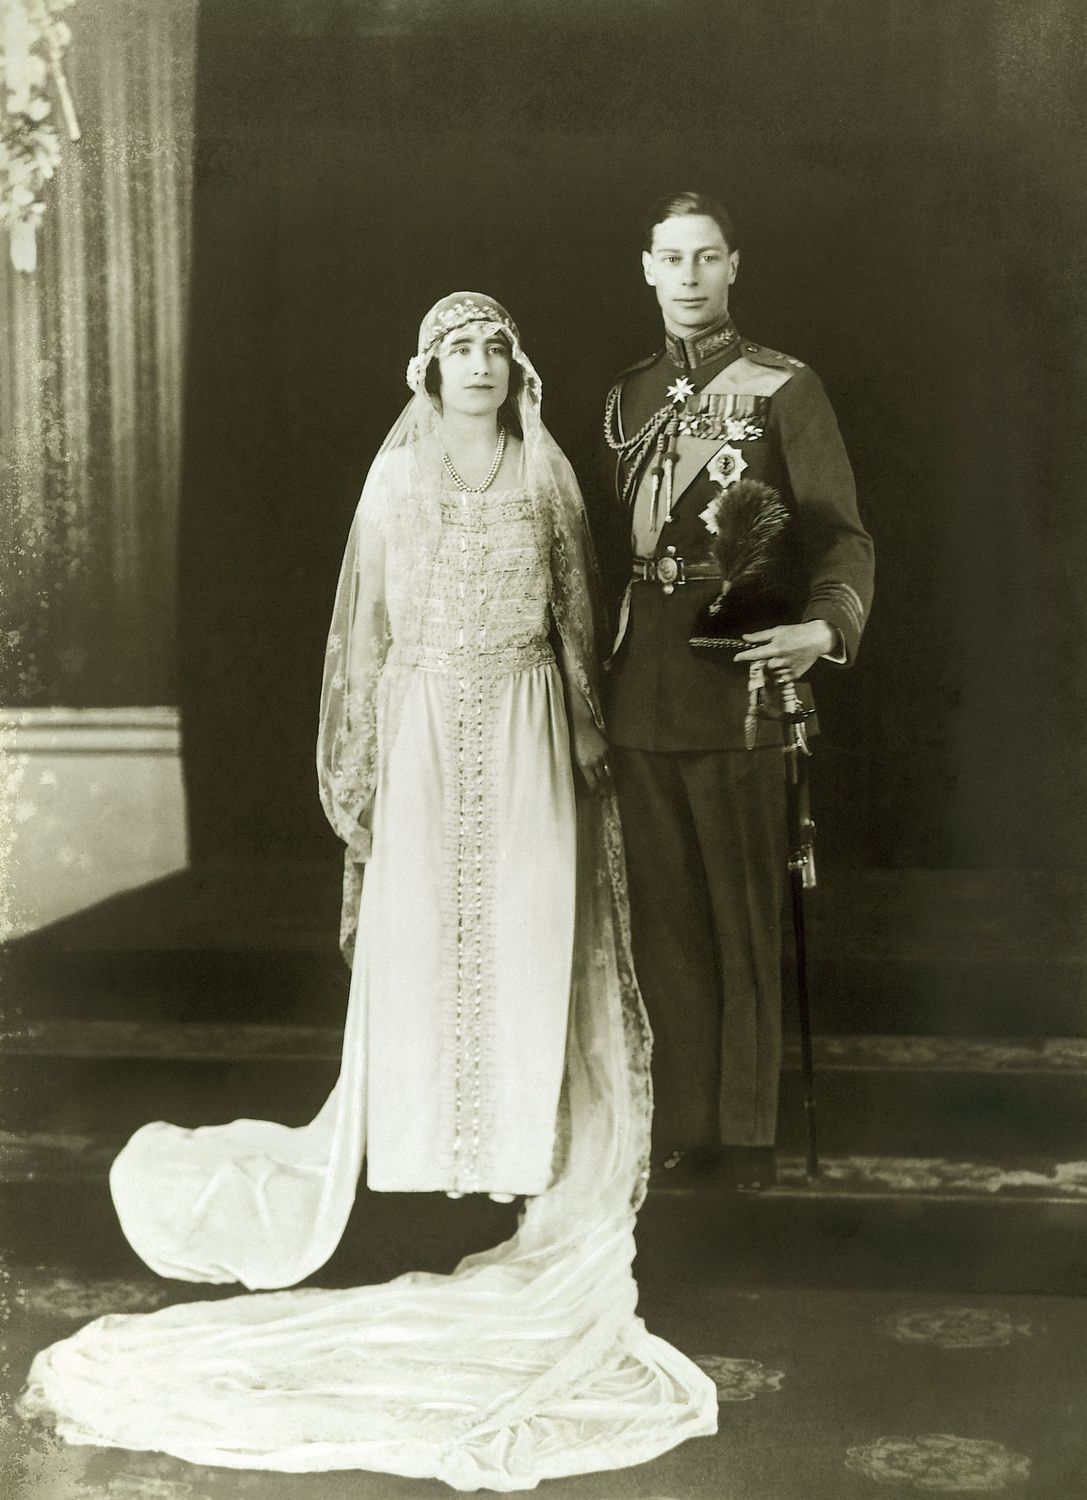 April 26 – Prince Albert, Duke of York (later George VI) marries Lady Elizabeth Bowes-Lyon (later Queen Elizabeth The Queen Mother) in Westminster Abbey.